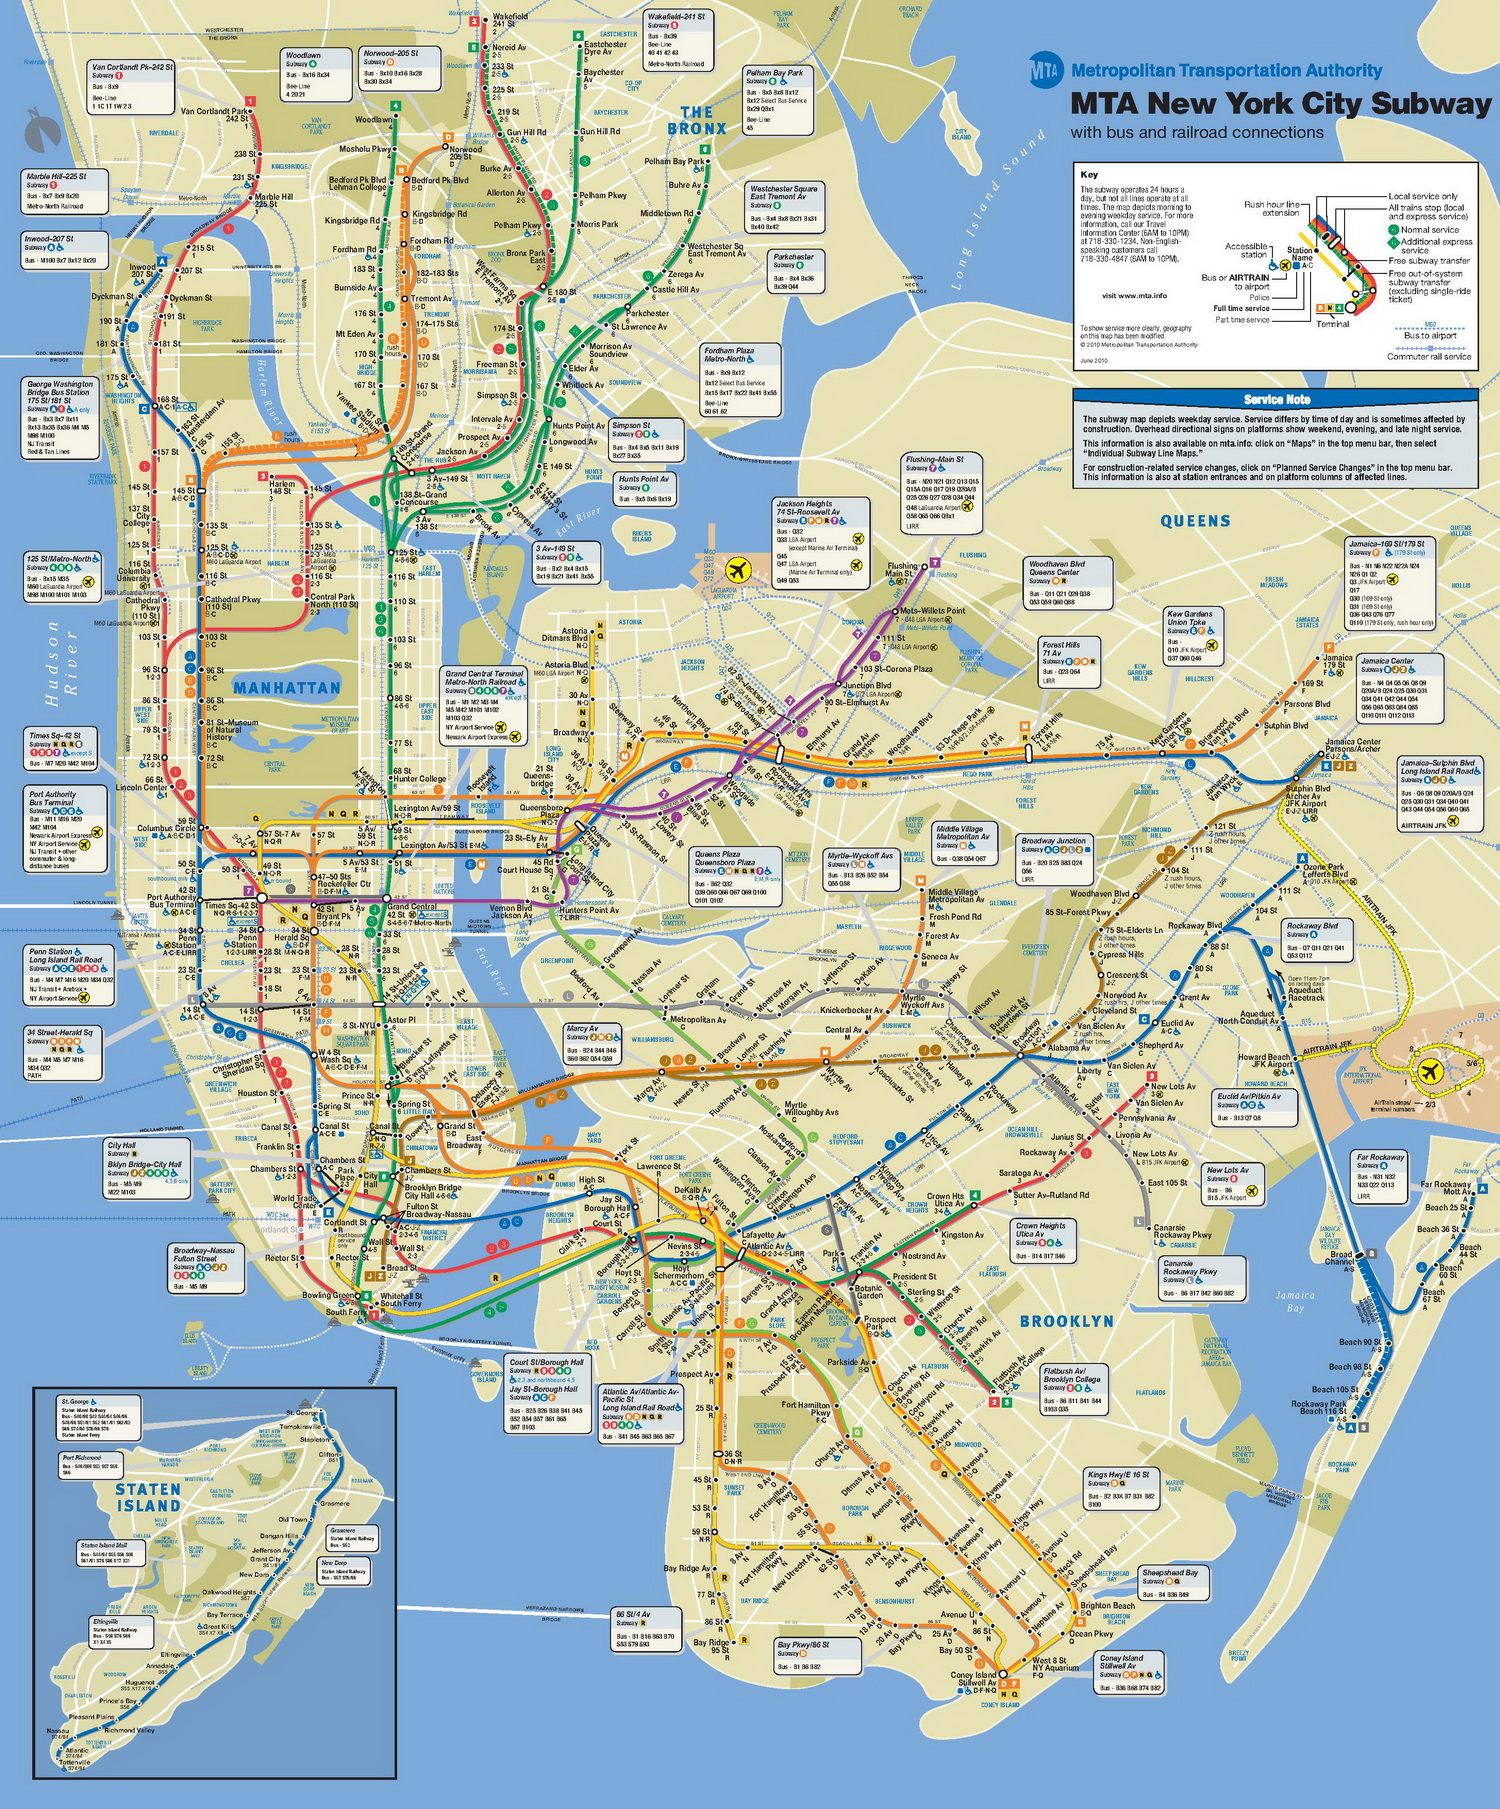 Subway Map For New York City.New York City Subway Map Large Edm Identity